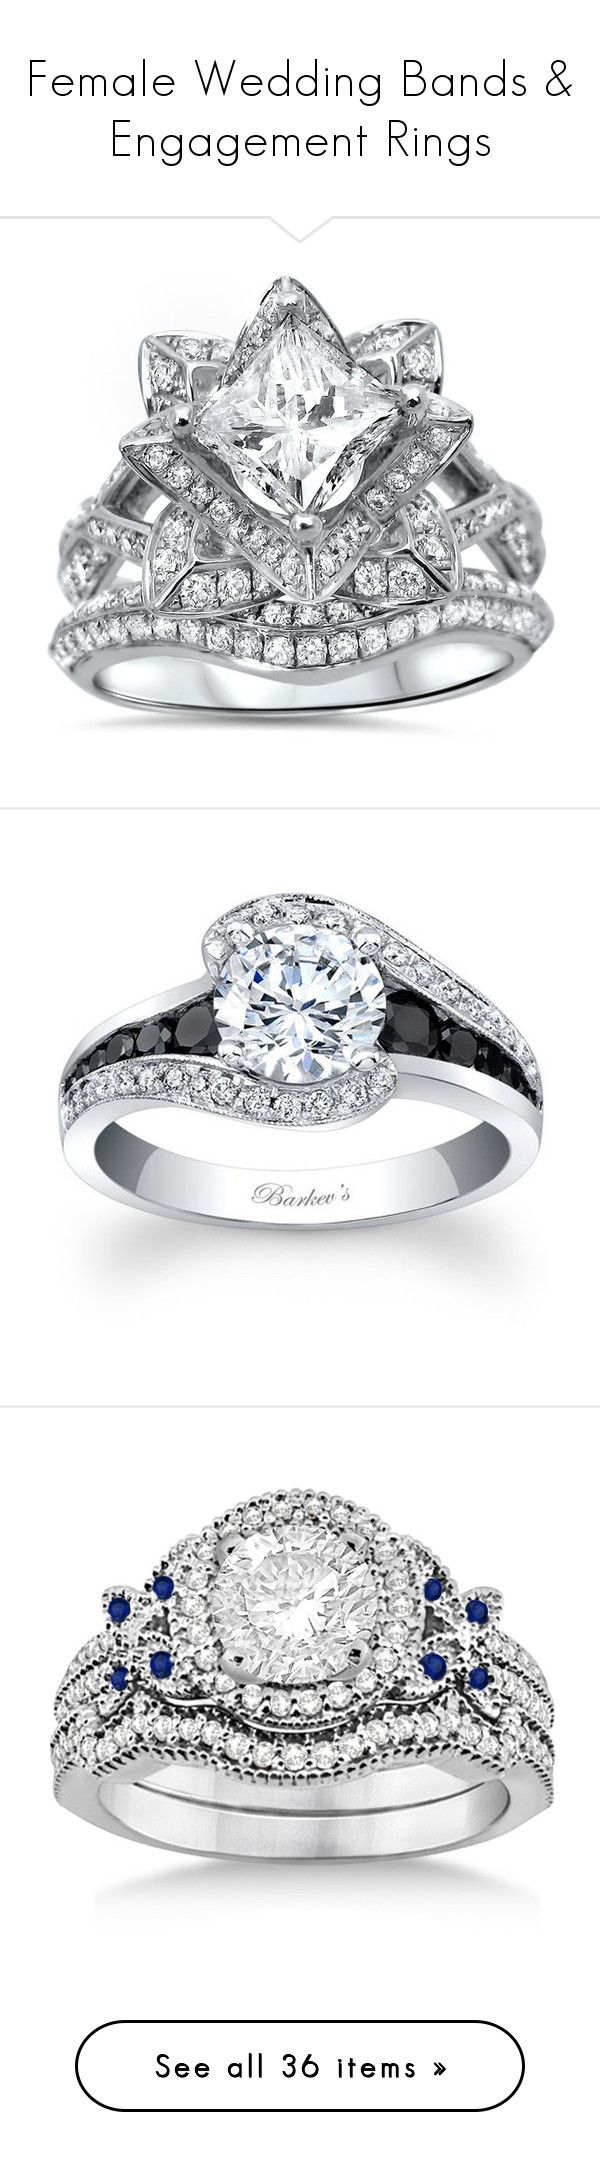 female wedding bands pagan wedding rings Female Wedding Bands Engagement Rings by boondock saint liked on Polyvore